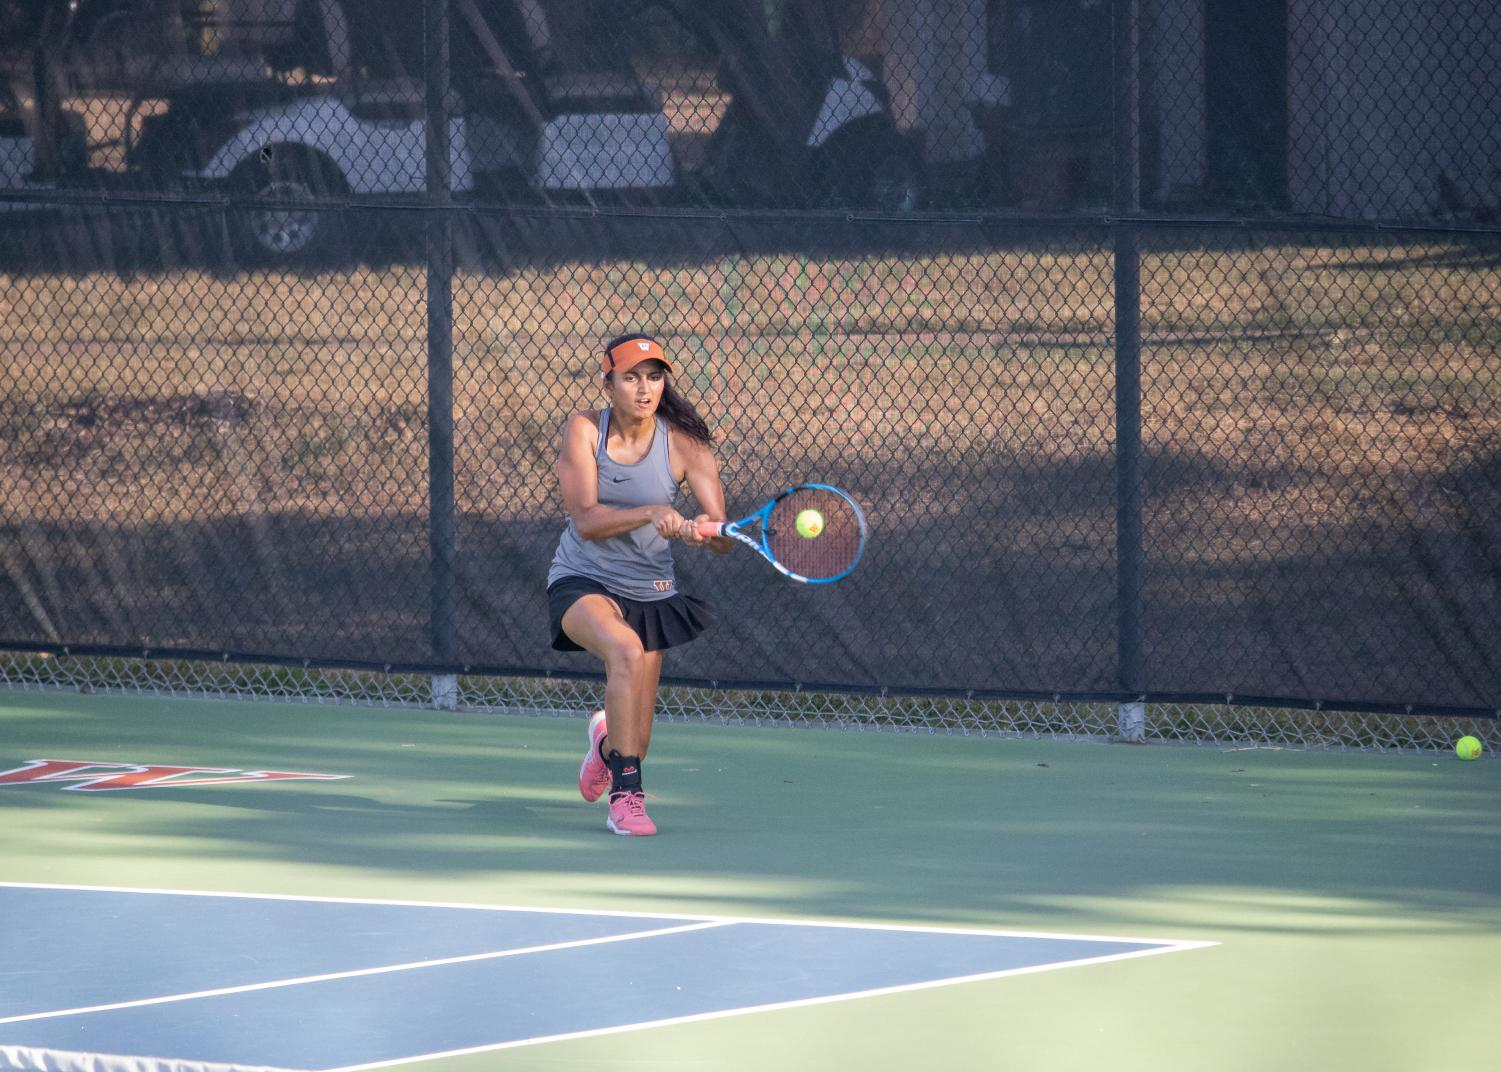 Running to return the ball on the backhand side, Kinjal Khatri '20 gracefully wins the point. Unfortunately, she fell short in her match and lost in two 6-0 sets.